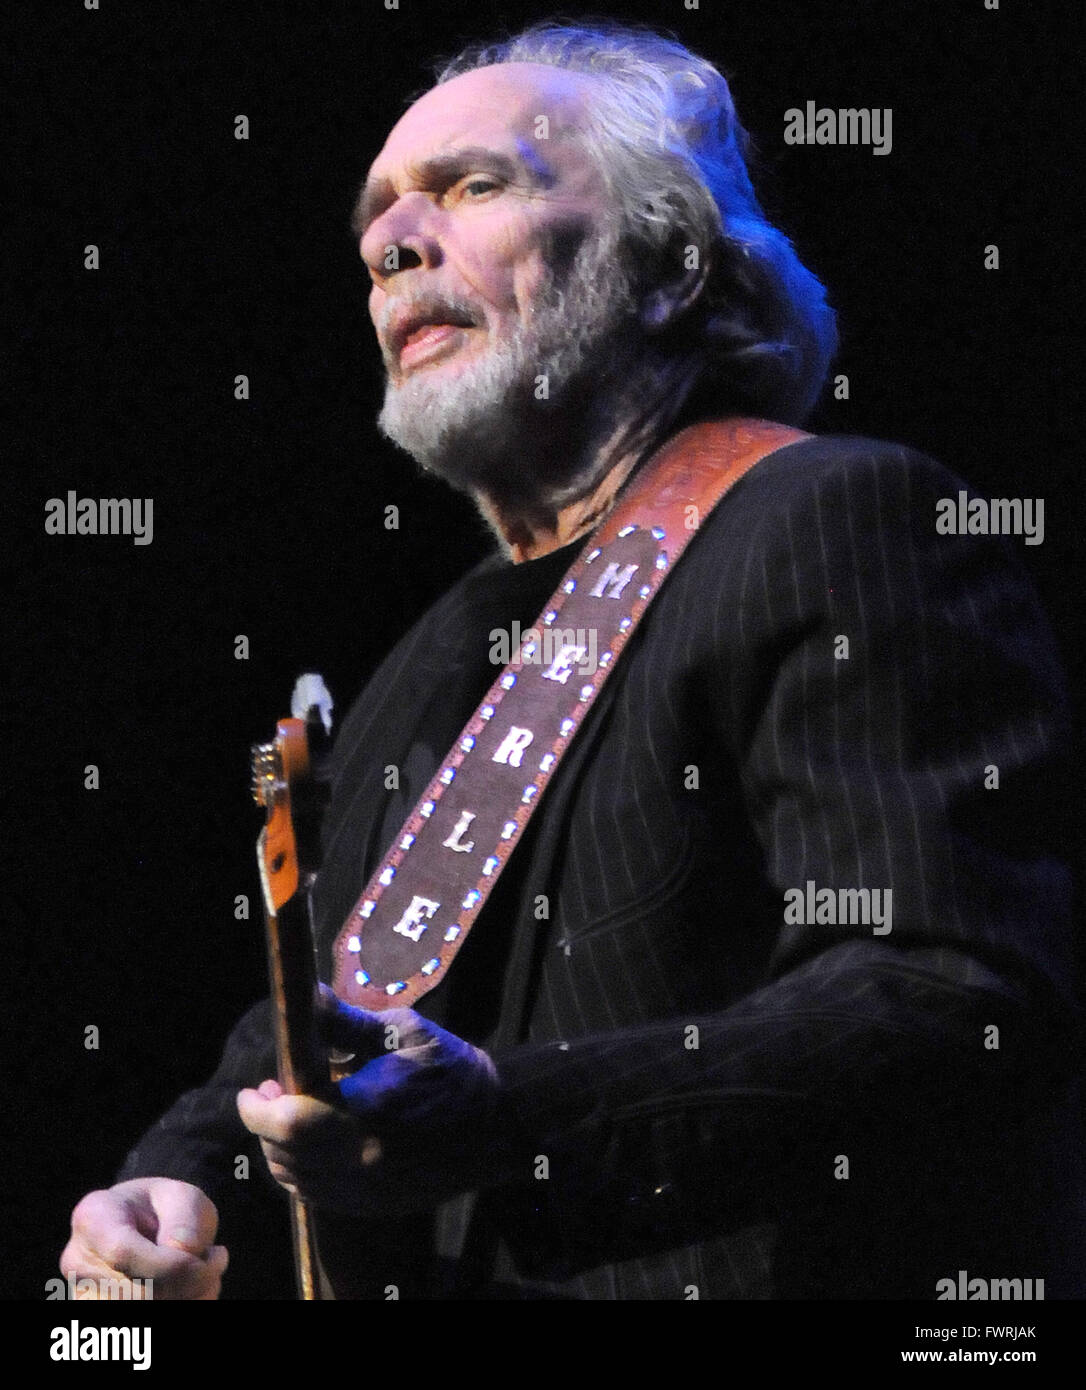 February 02, 2011 - Melbourne, Florida, United States - Country music legend Merle Haggard performs at the King - Stock Image